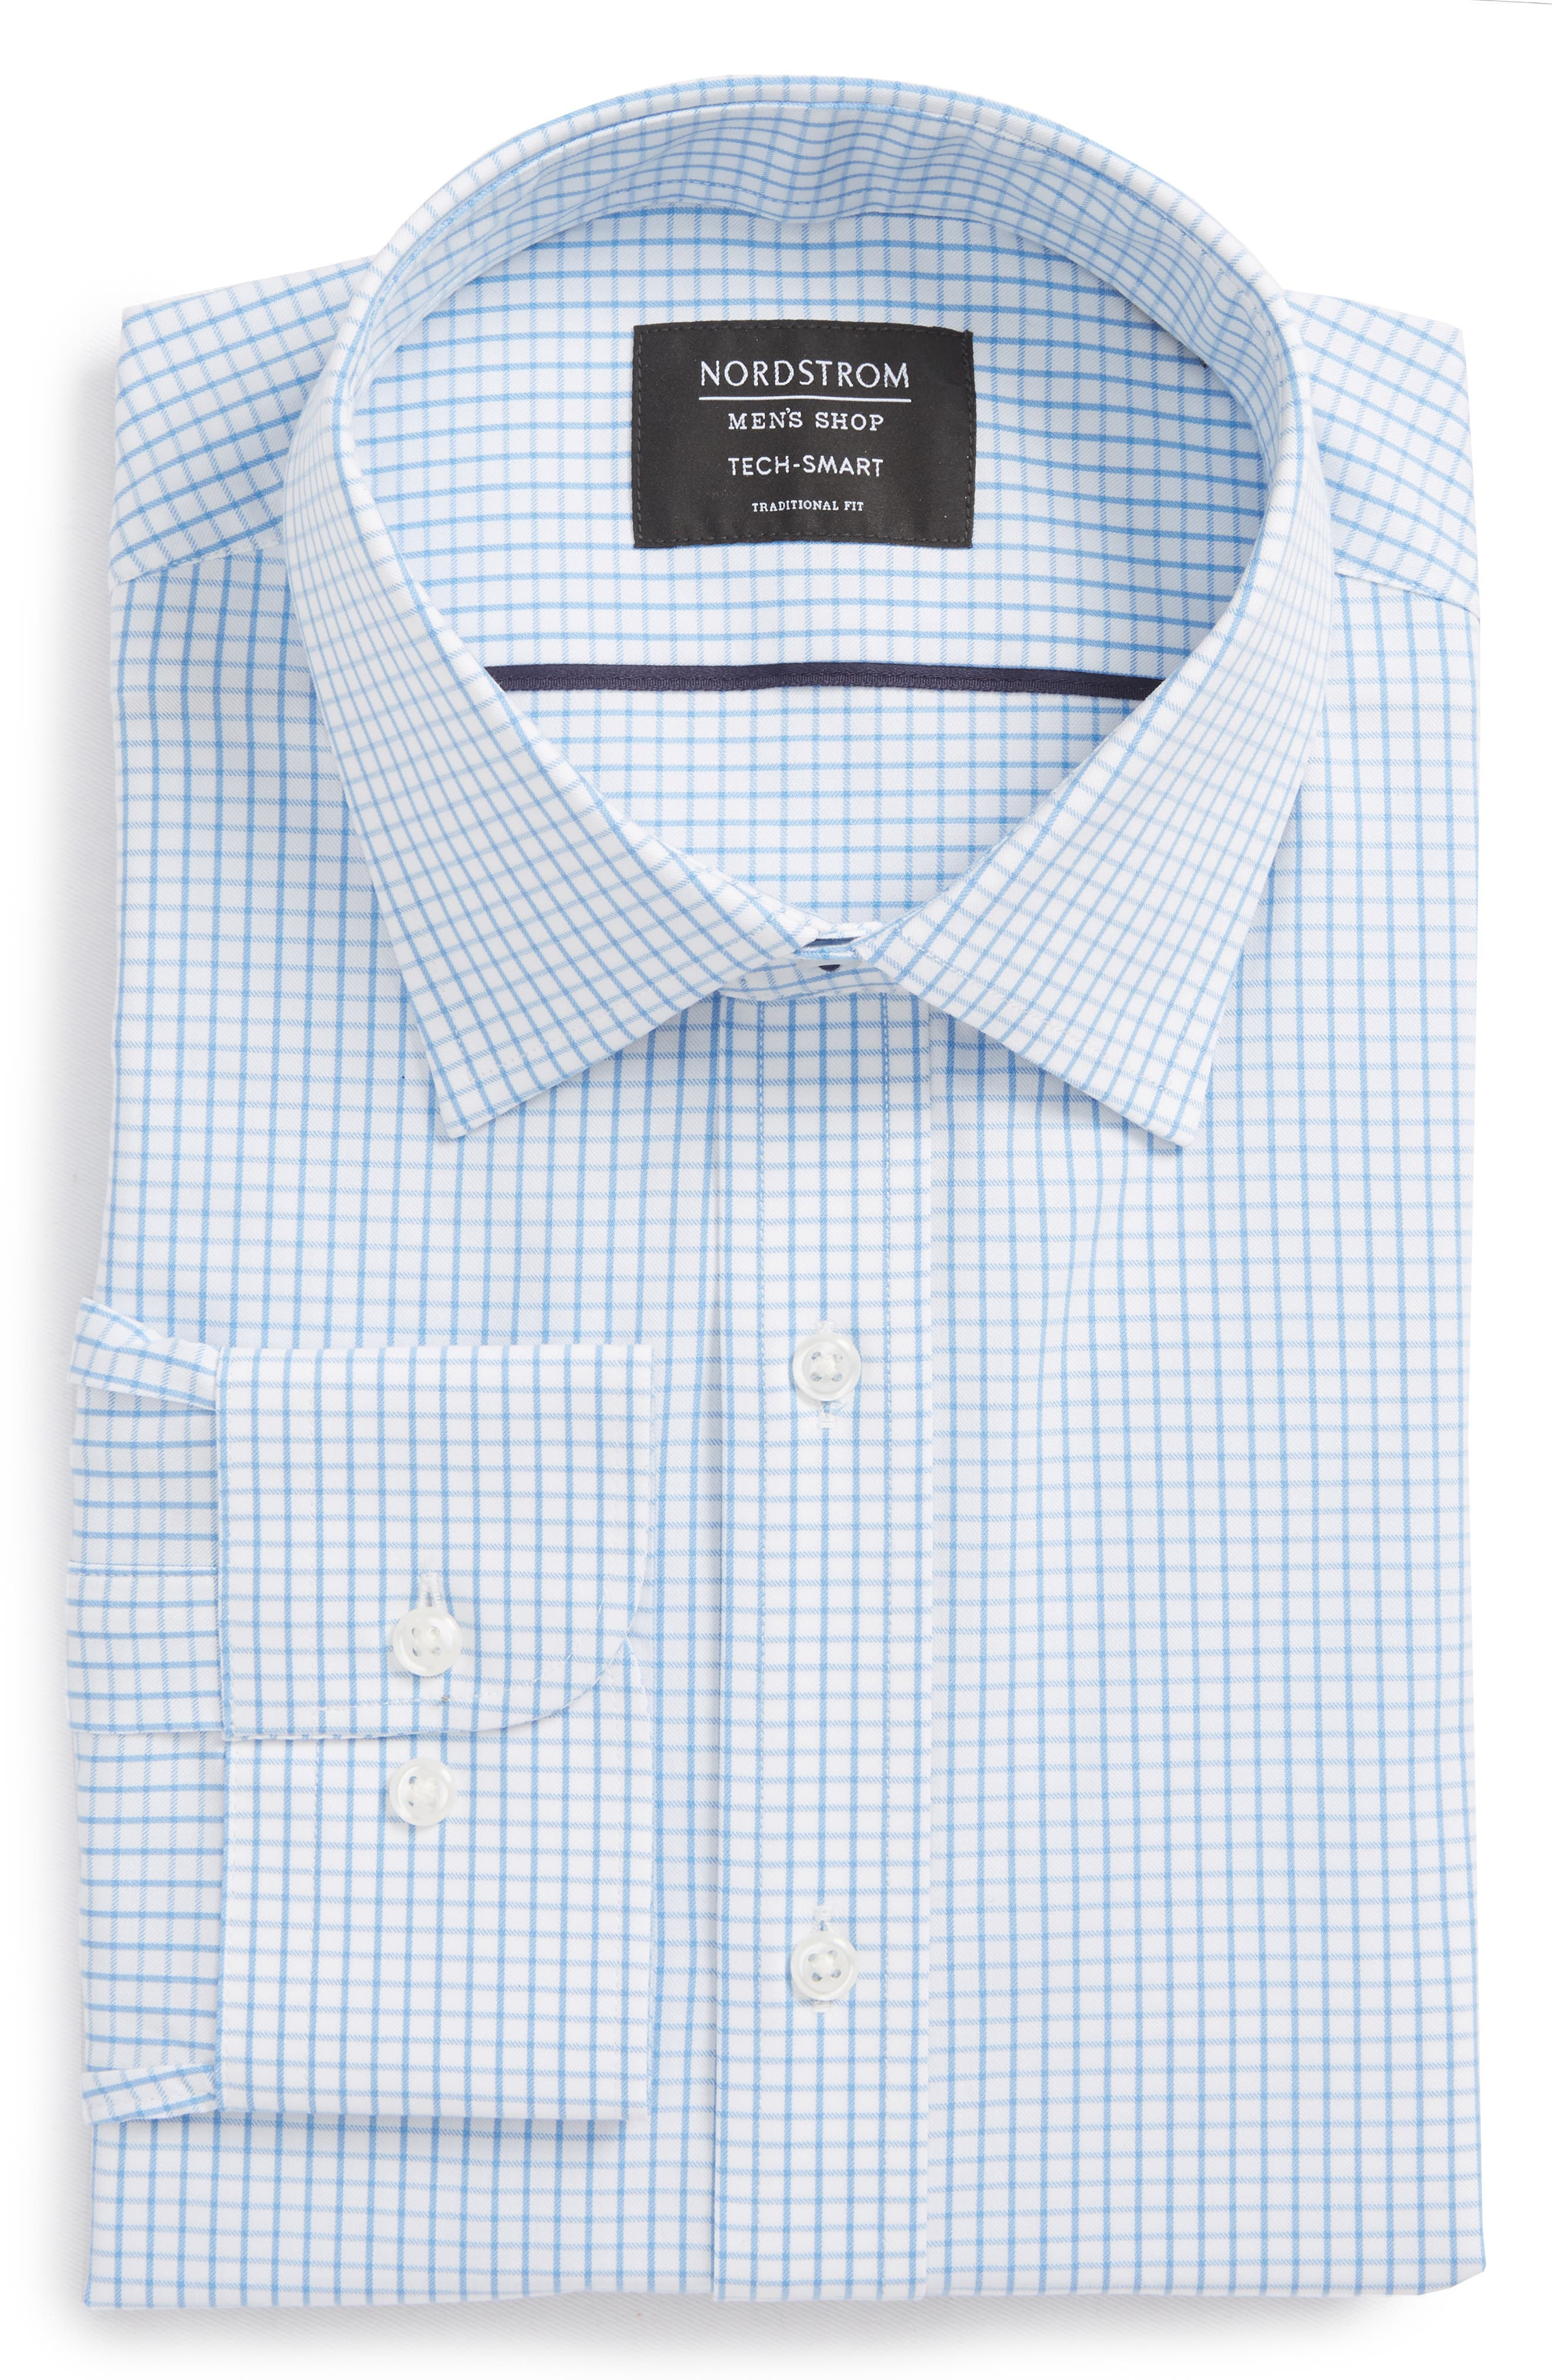 Tech-Smart Traditional Fit Stretch Tattersall Dress Shirt,                             Main thumbnail 1, color,                             Blue Lake